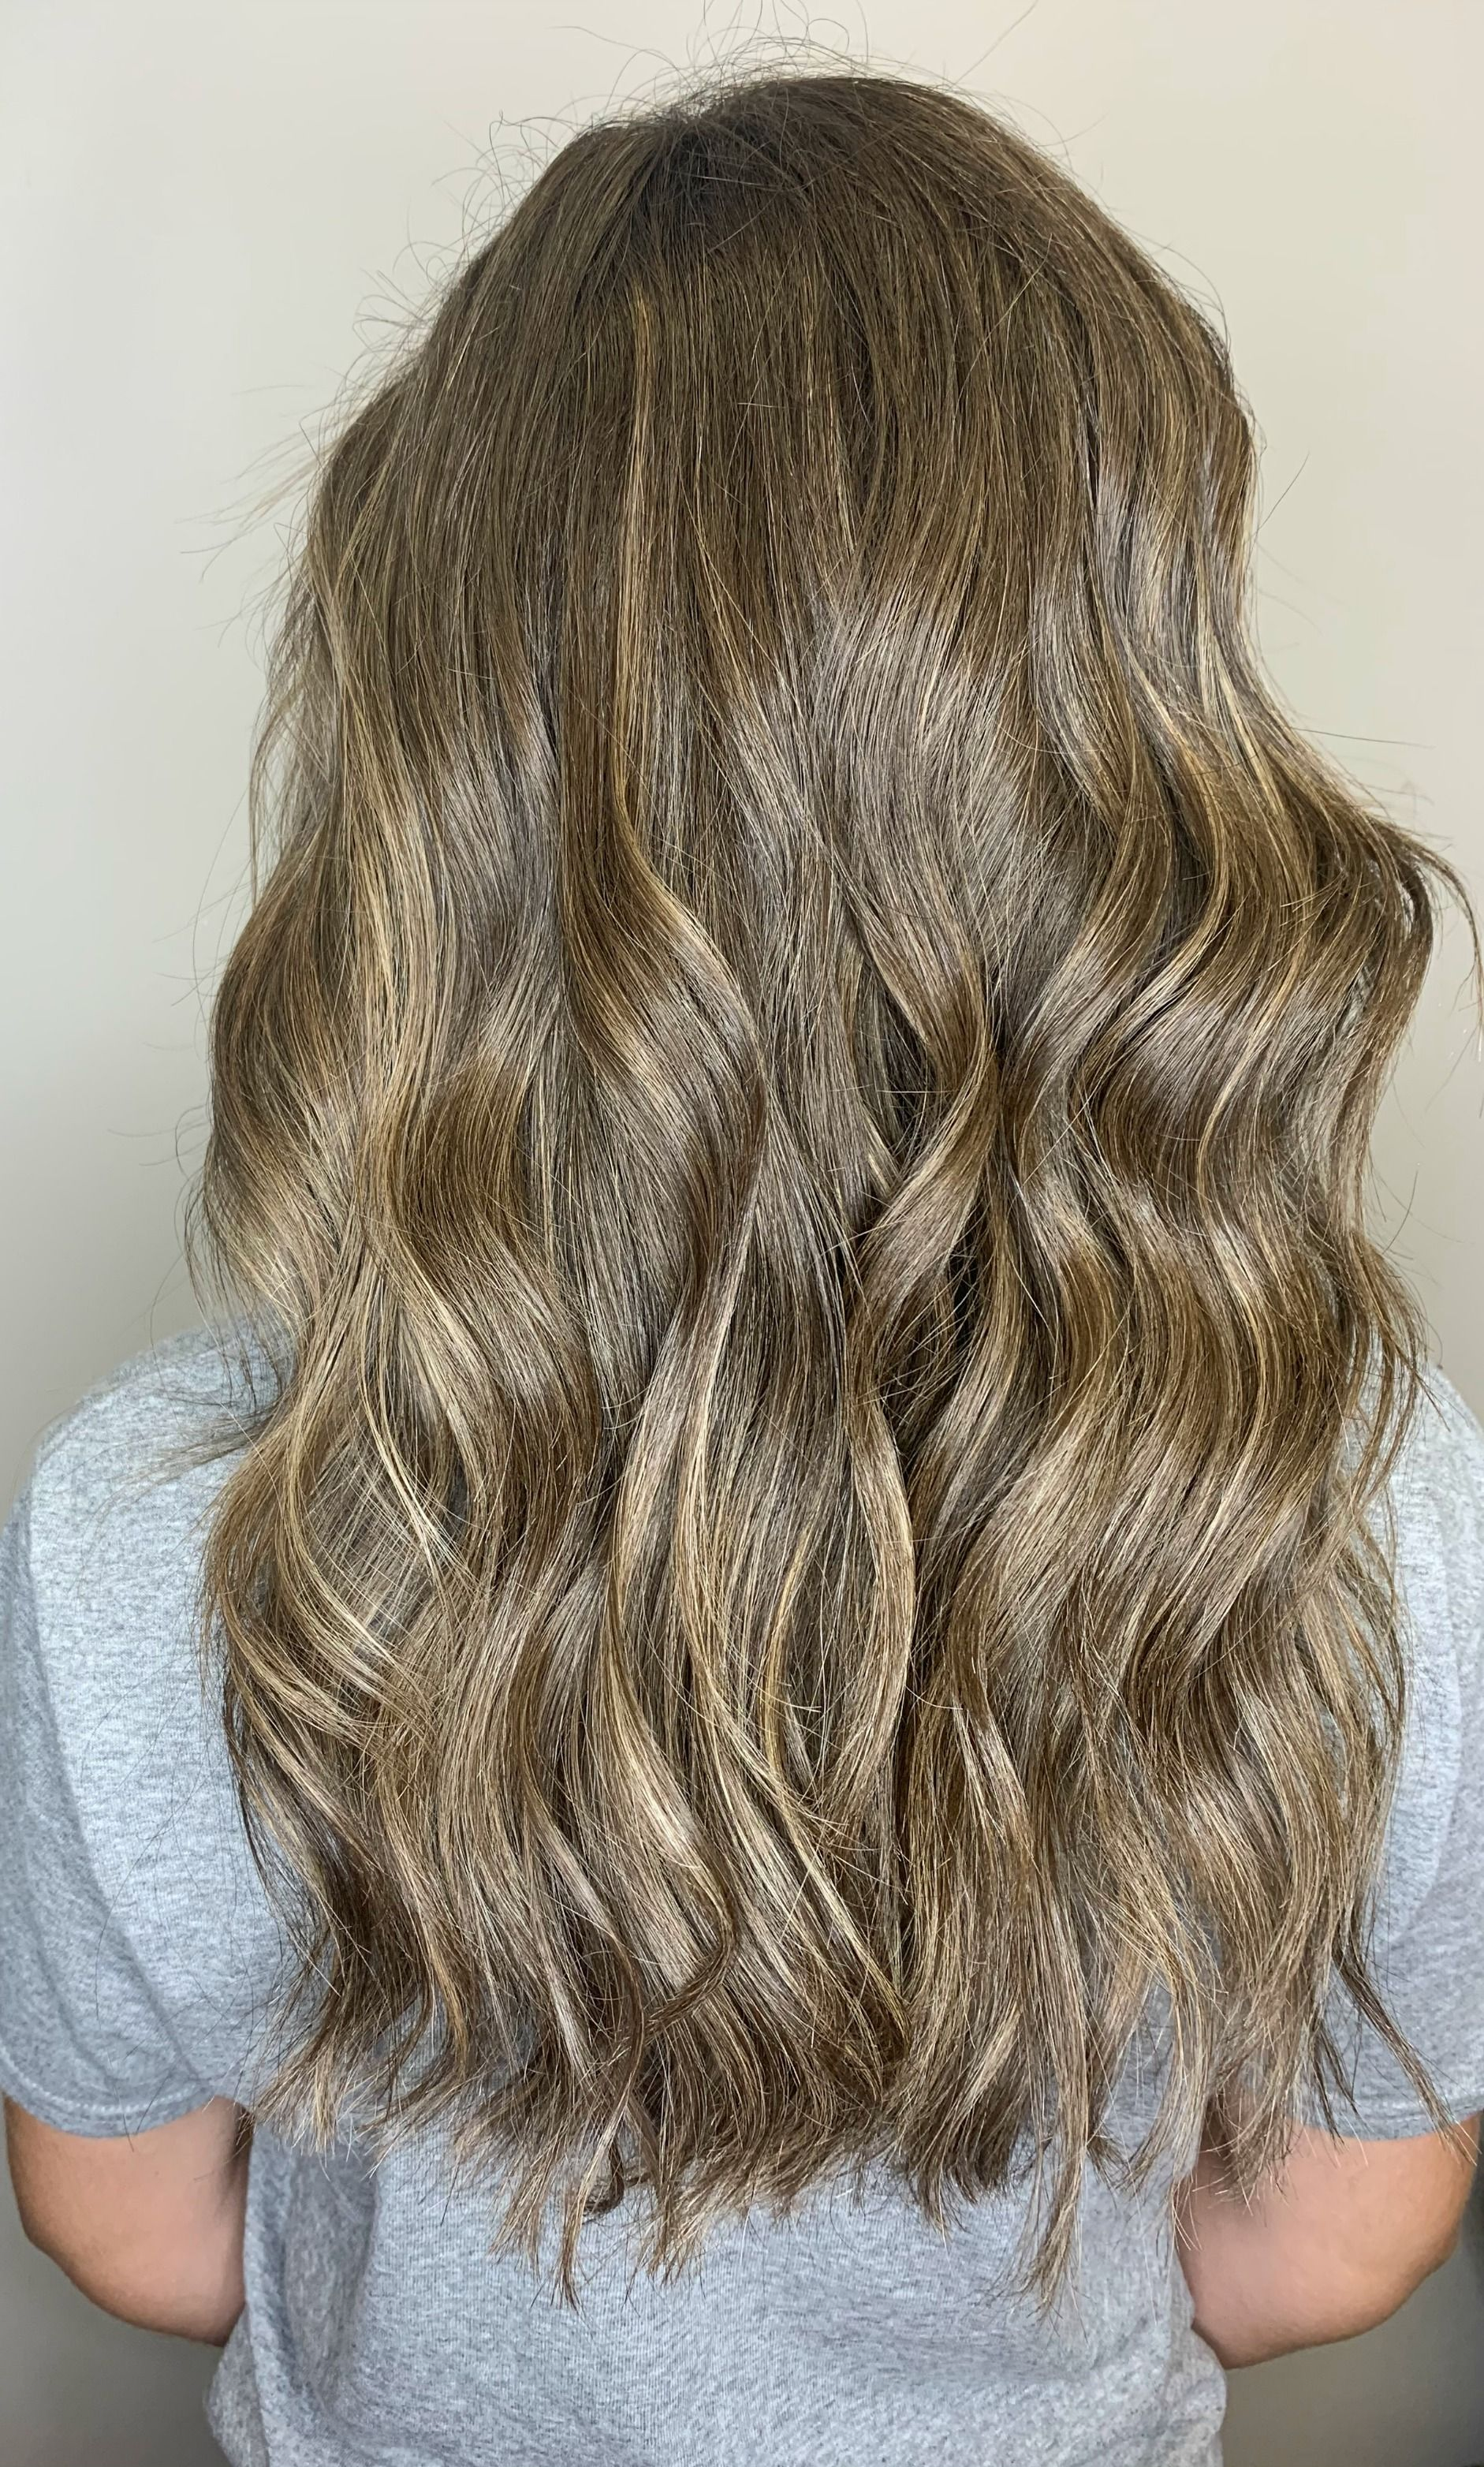 Sun Kissed Balayage By Caracollins In 2020 Hair Color Balayage Long Hair Styles